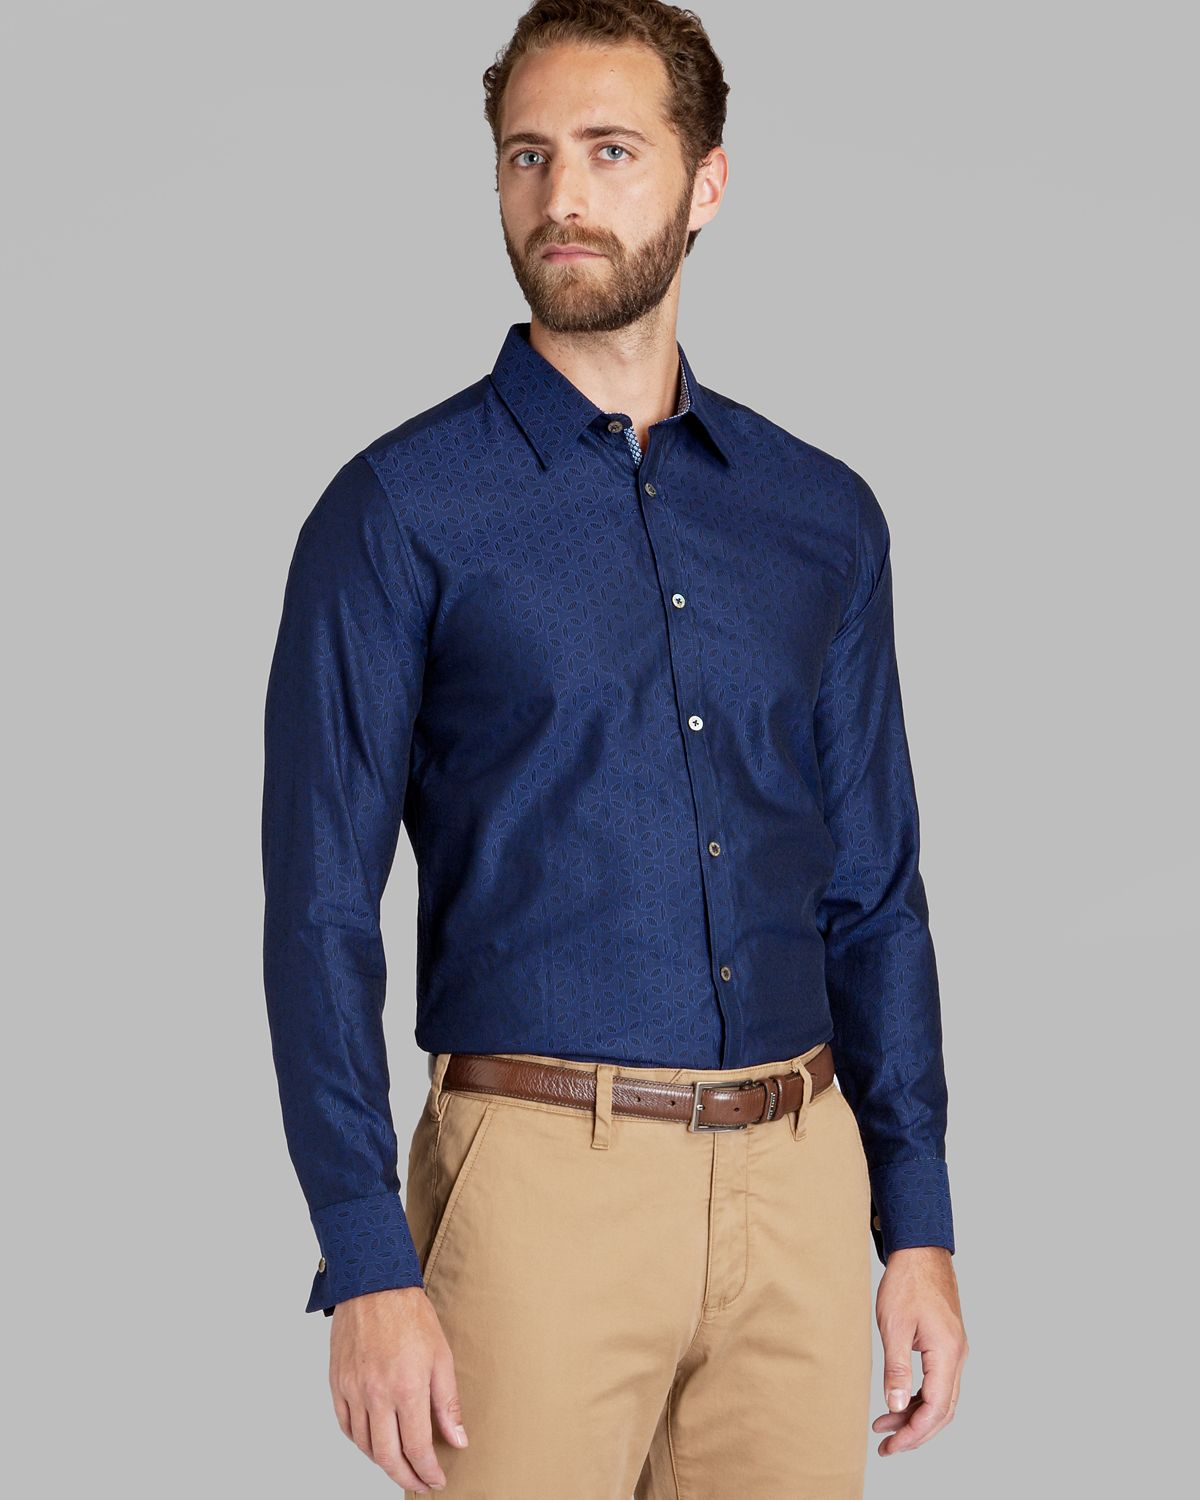 Lyst ted baker teejay jacquard print dress shirt regular for Blue dress shirt outfit